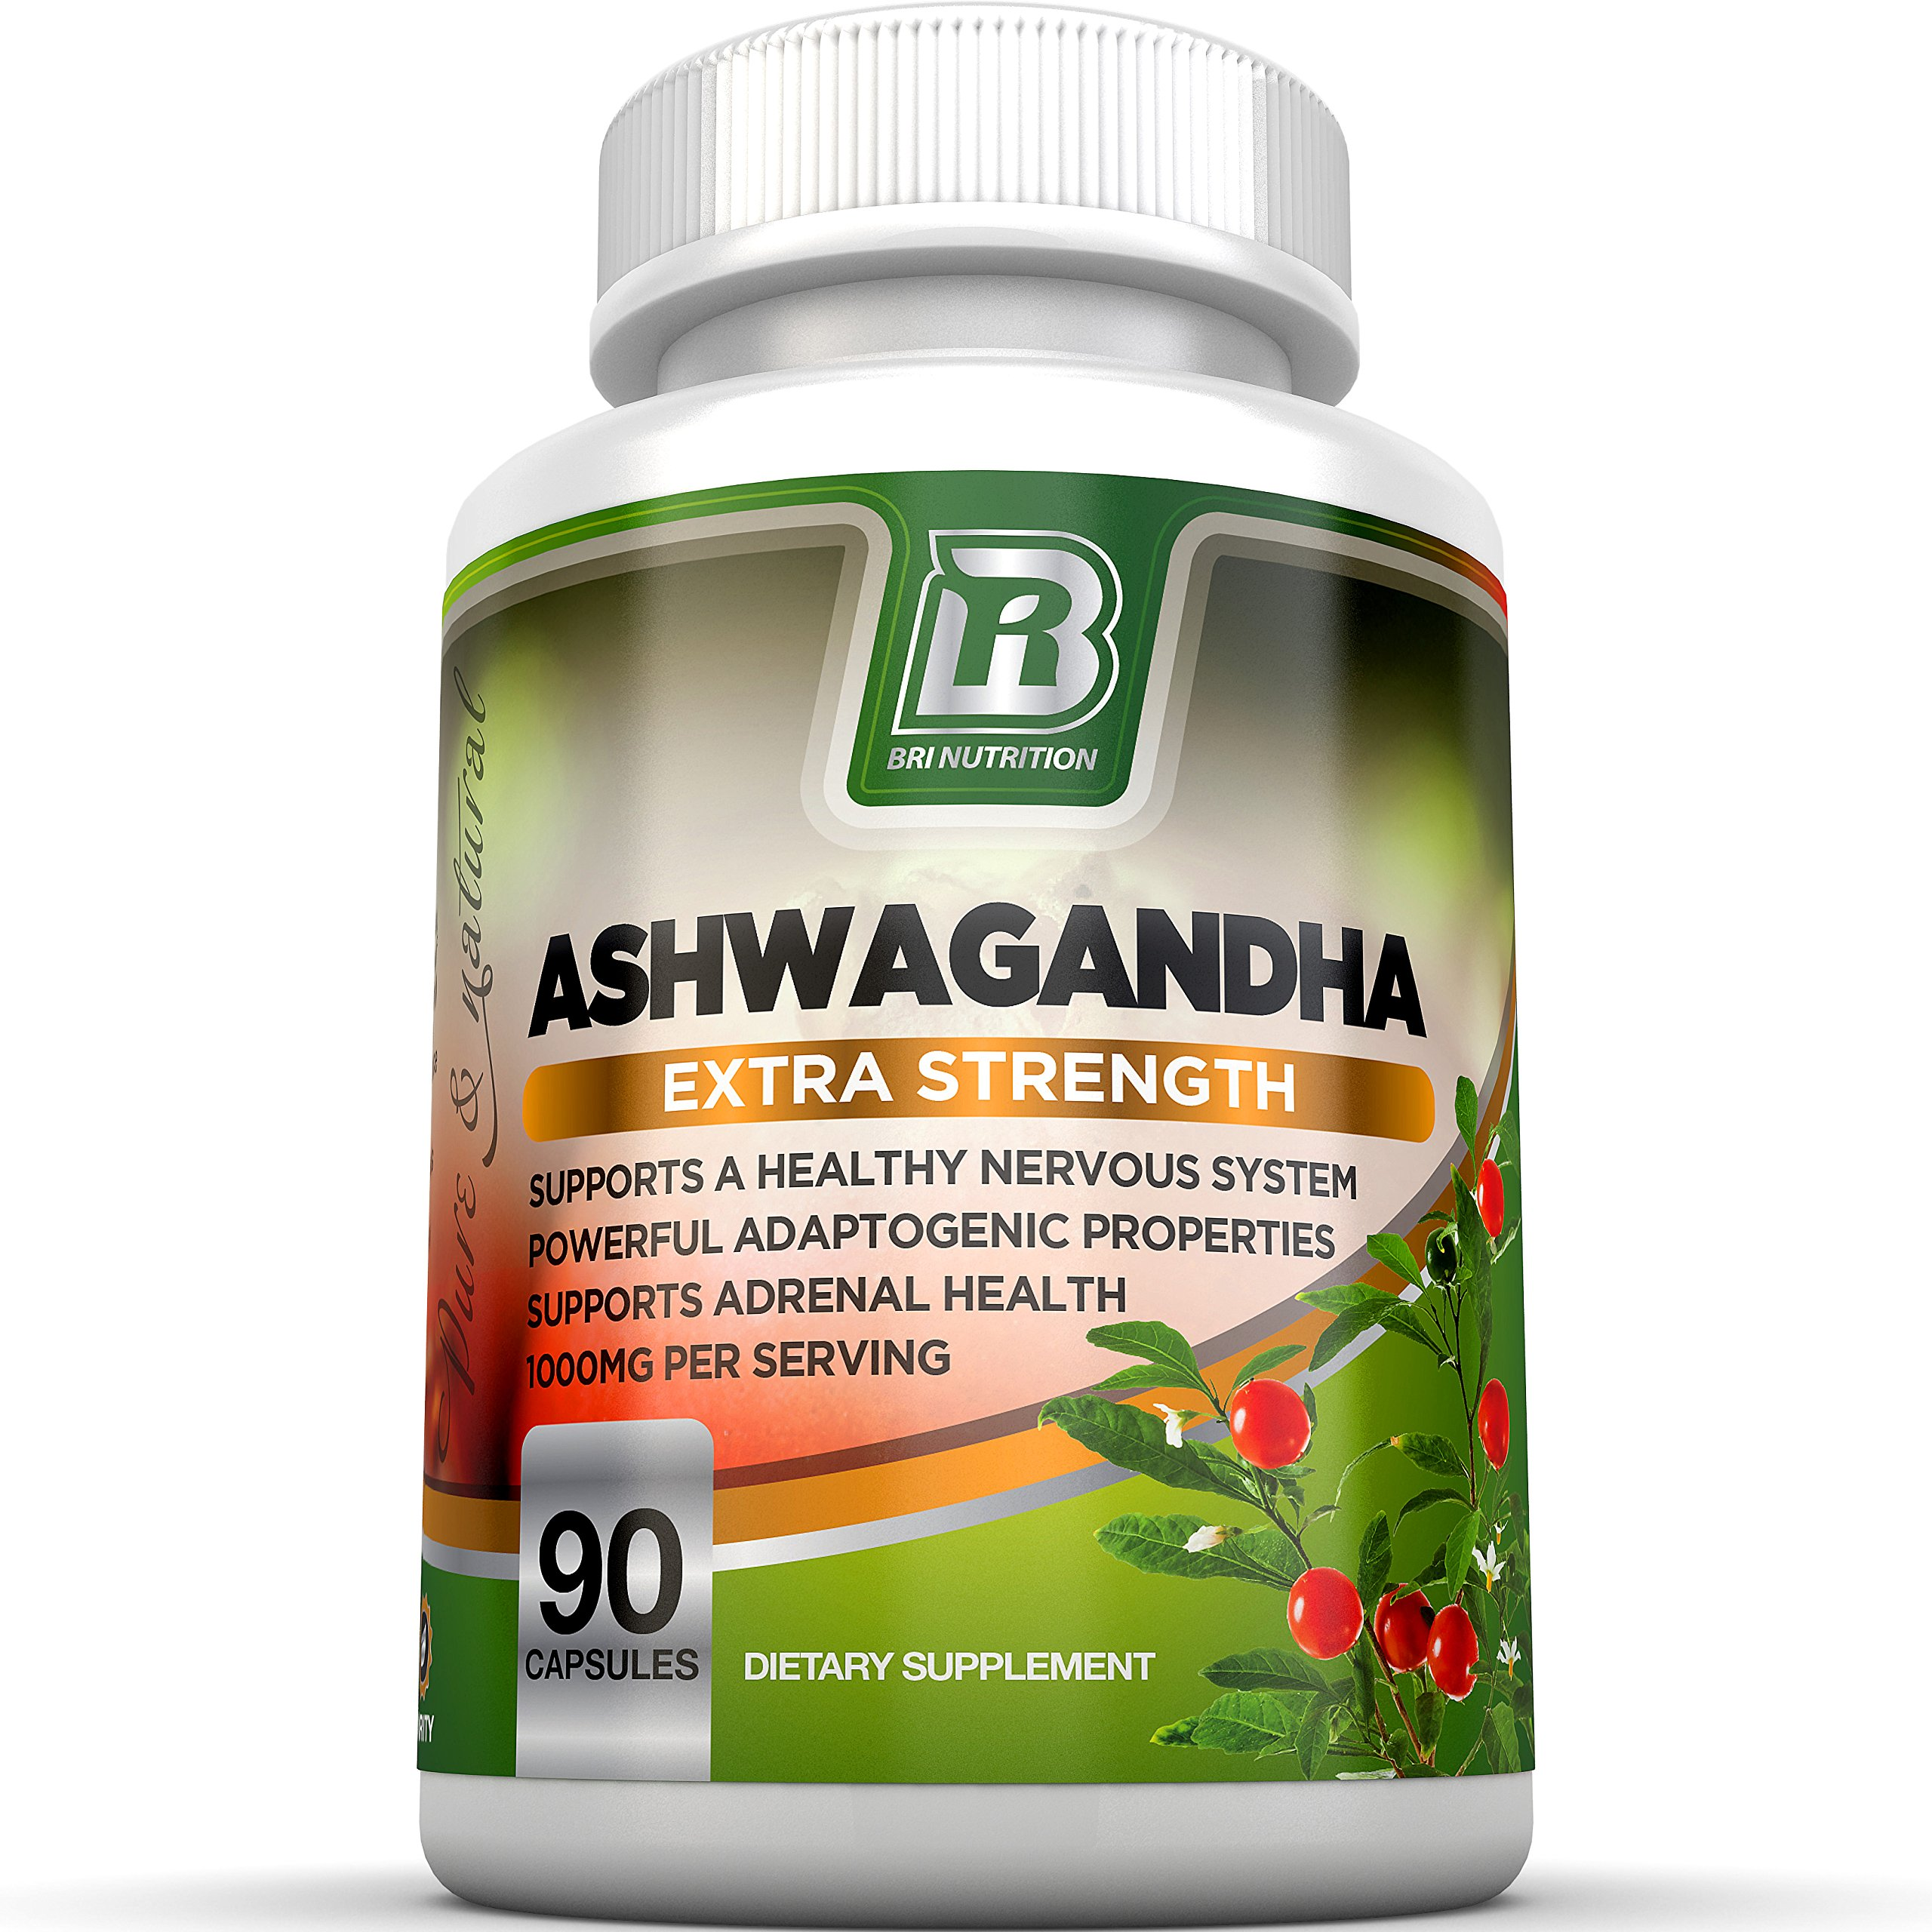 BRI Nutrition Ashwagandha - Premium Stress & Anxiety Relief w/Energy Boost & Calm, Vegetable Cellulose Capsules (90 Count) by BRI Nutrition